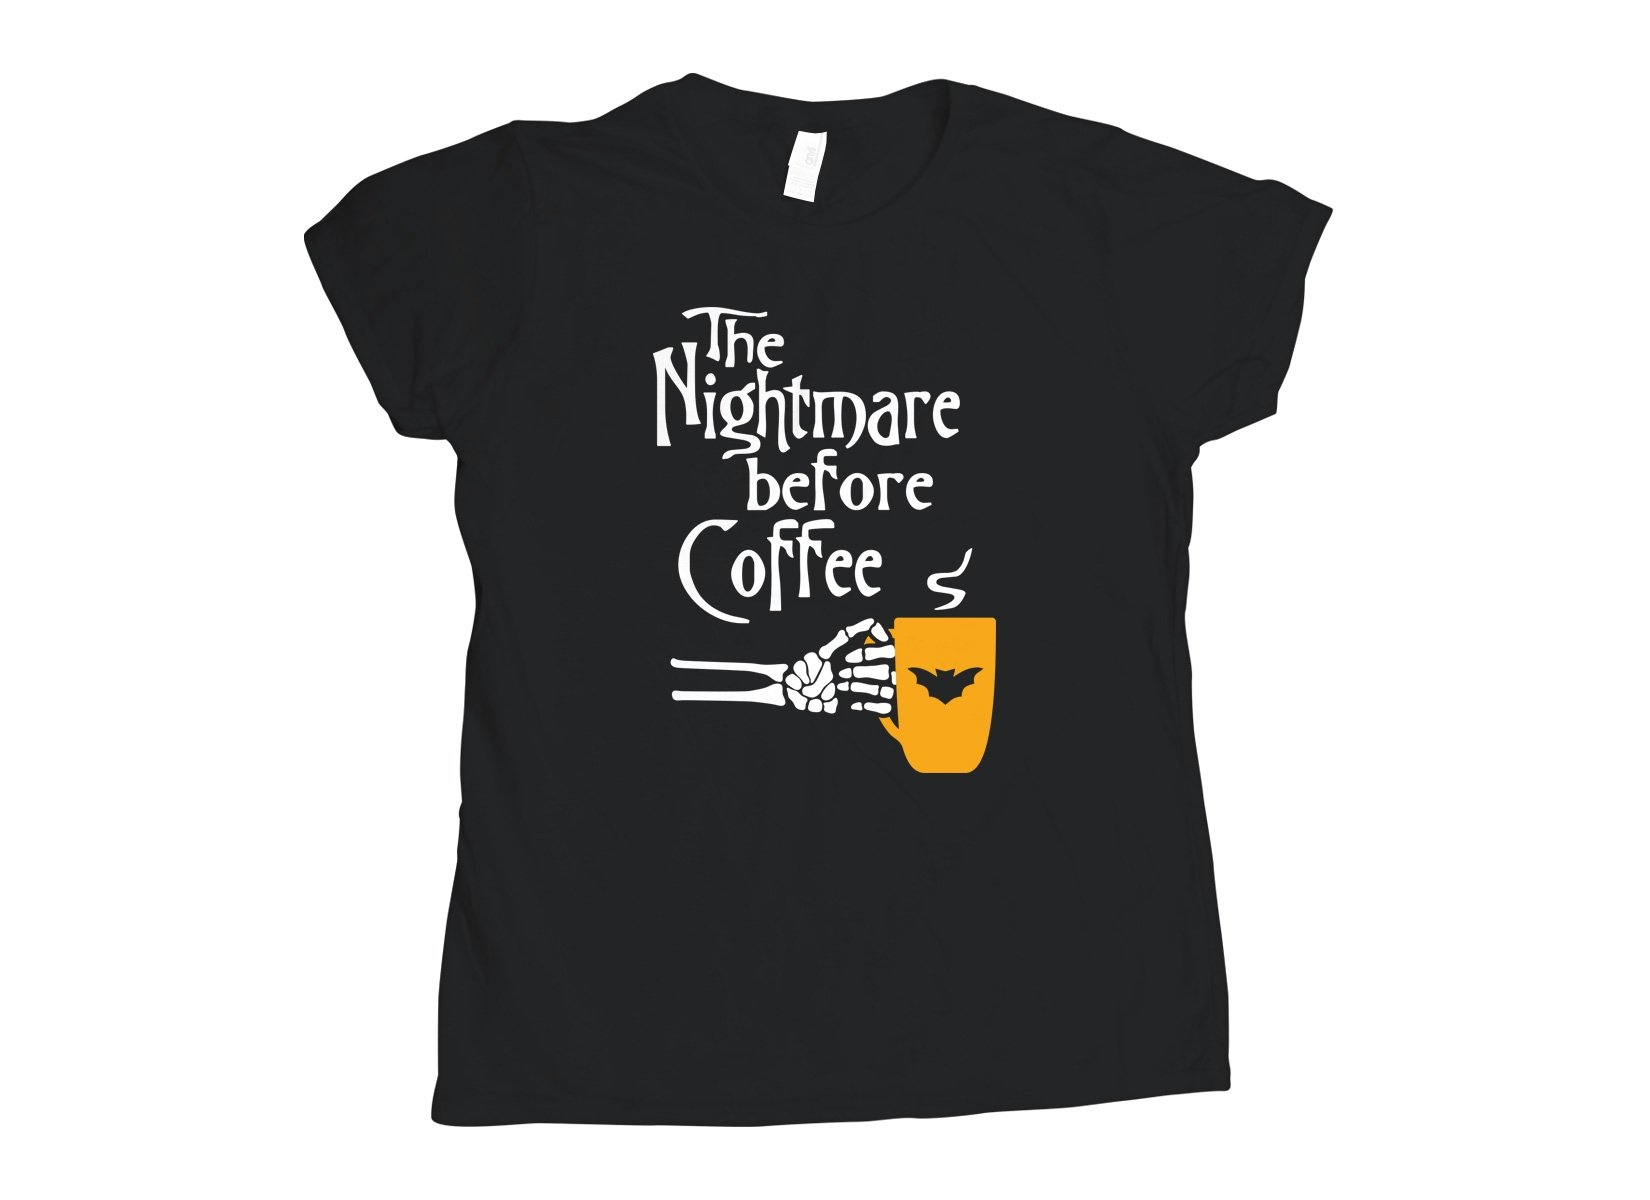 The Nightmare Before Coffee on Womens T-Shirt